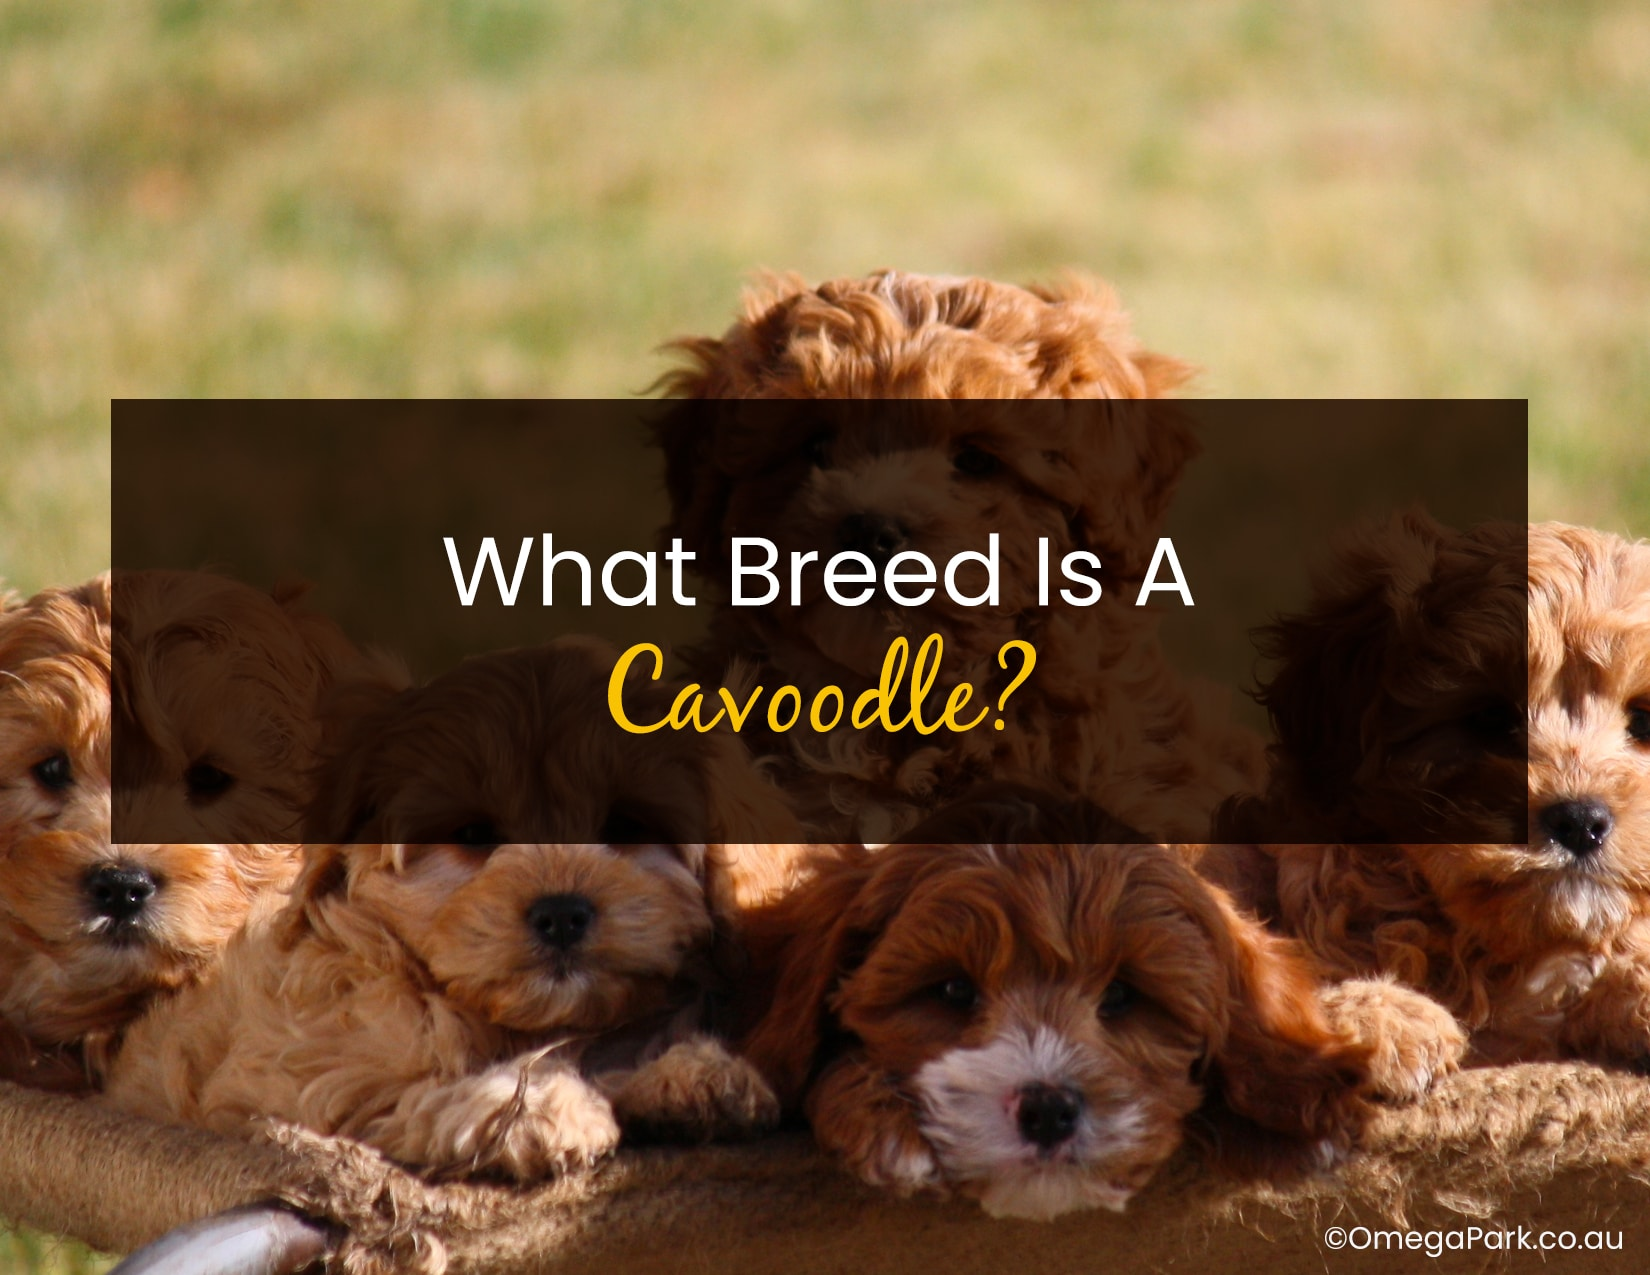 What Breed is a Cavoodle